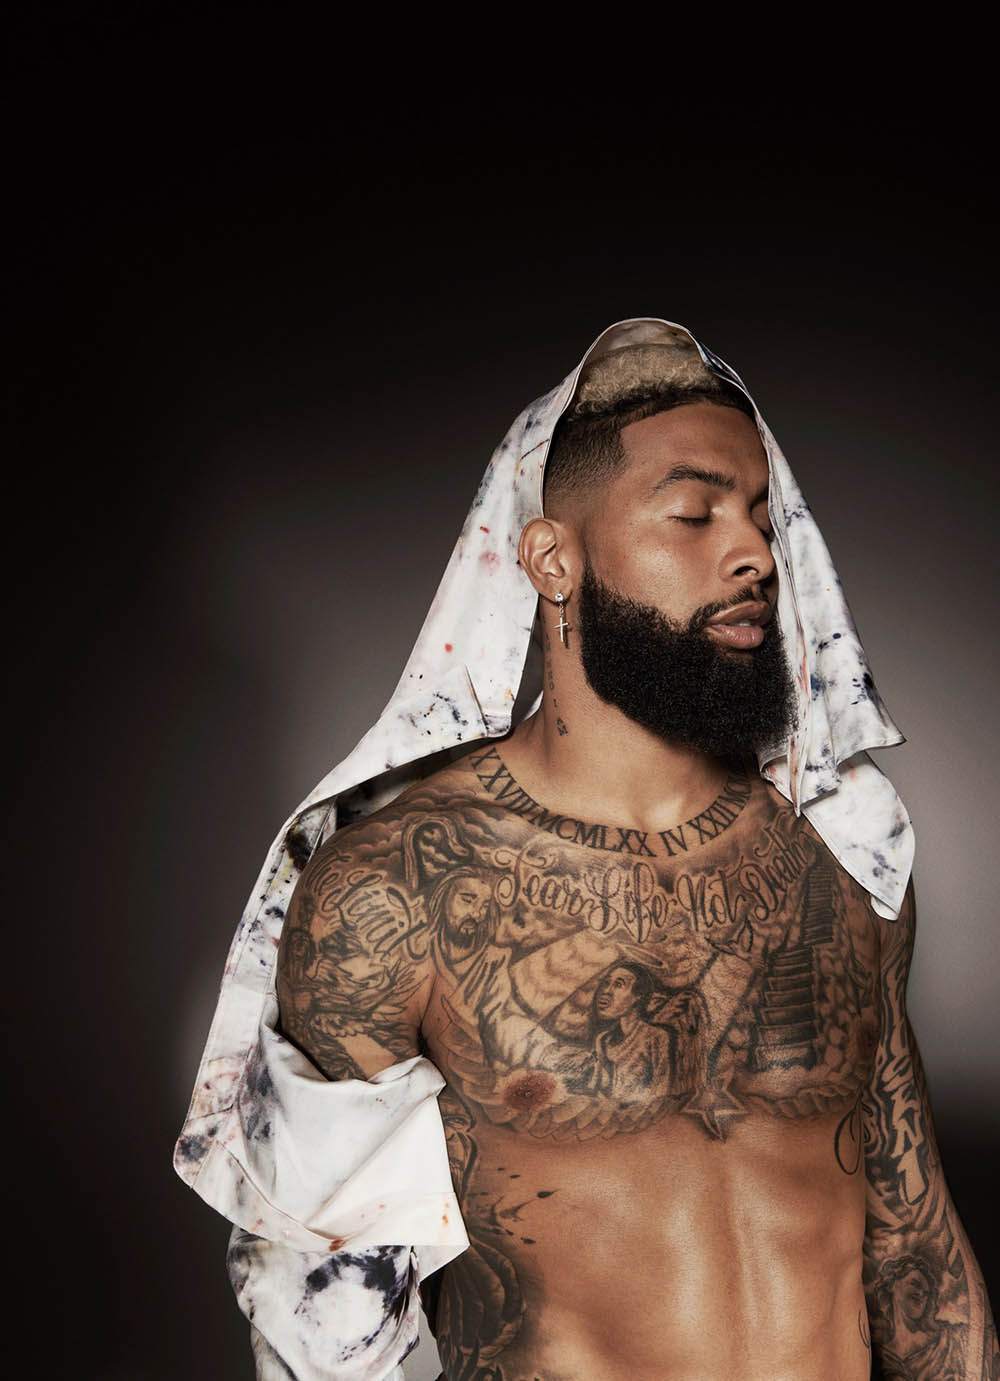 Odell Beckham Jr. covers GQ USA August 2019 by Paola Kudacki